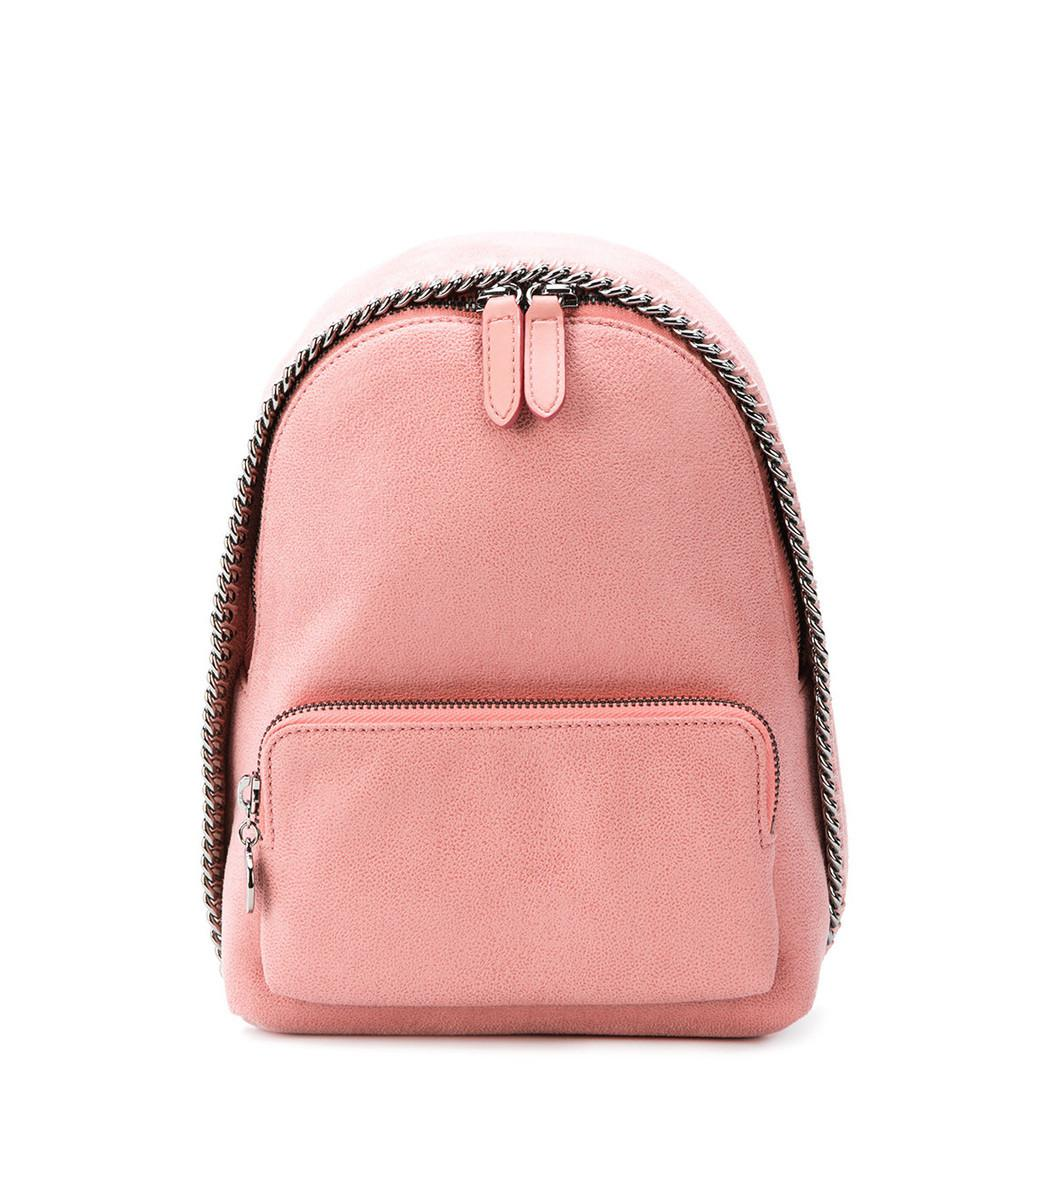 a91adee1e8f1 Lyst - Stella Mccartney Pink Mini Falabella Backpack Bag in Pink